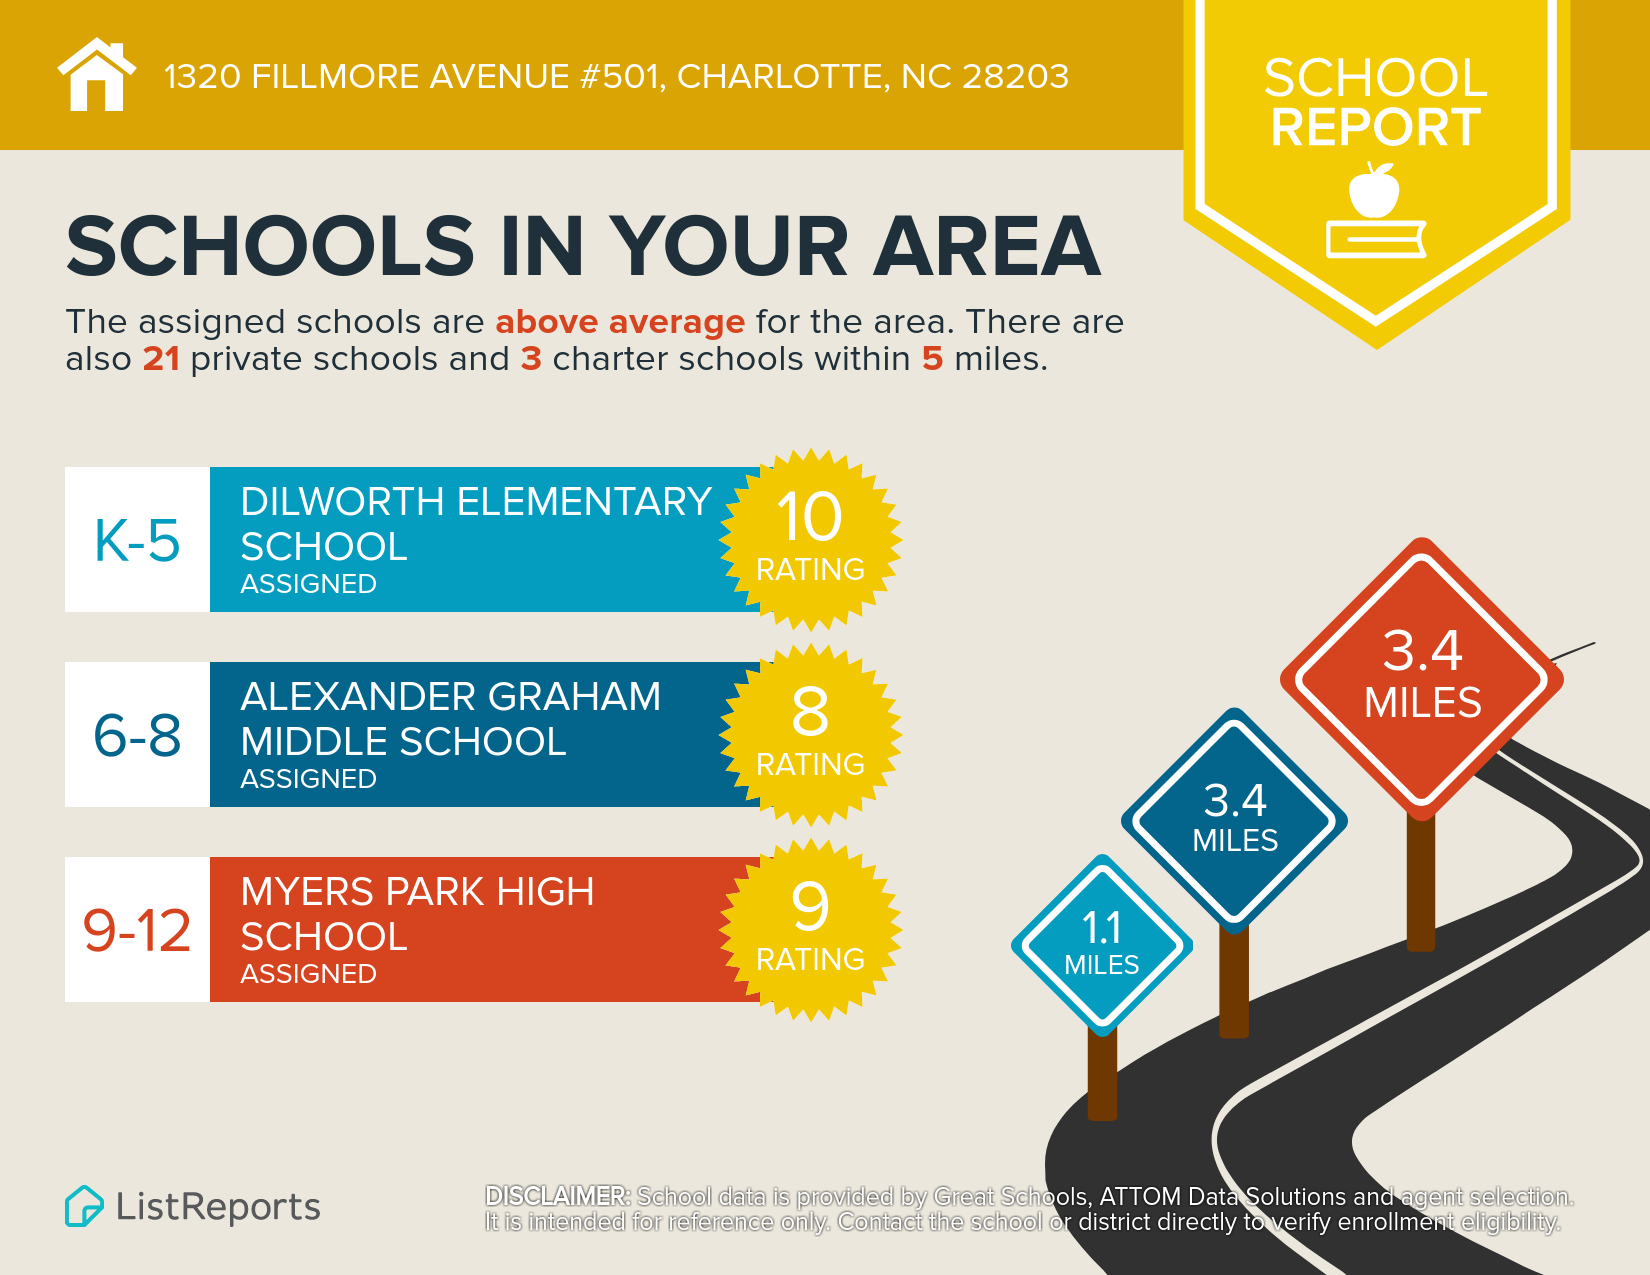 Higly rated schools: 1320 Fillmore